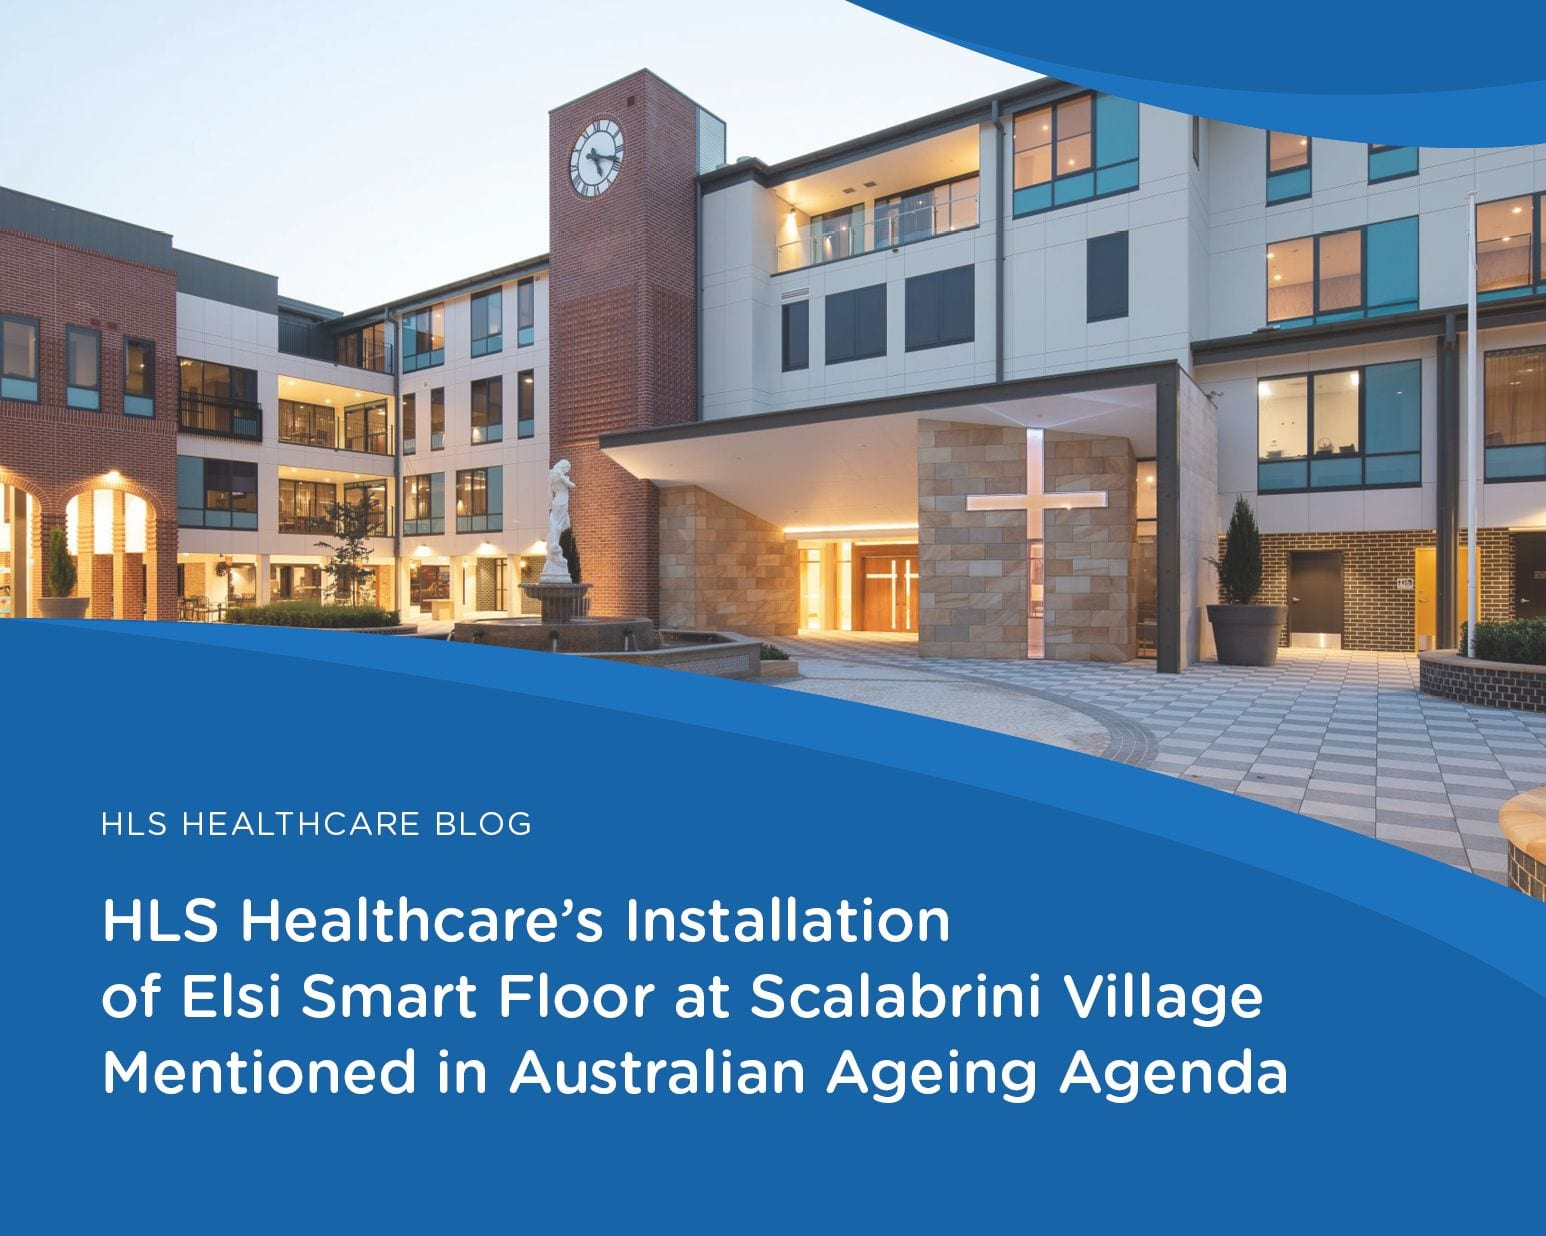 HLS Healthcare's Installation of Elsi Smart Floor at Scalabrini Village Mentioned in Australian Ageing Agenda